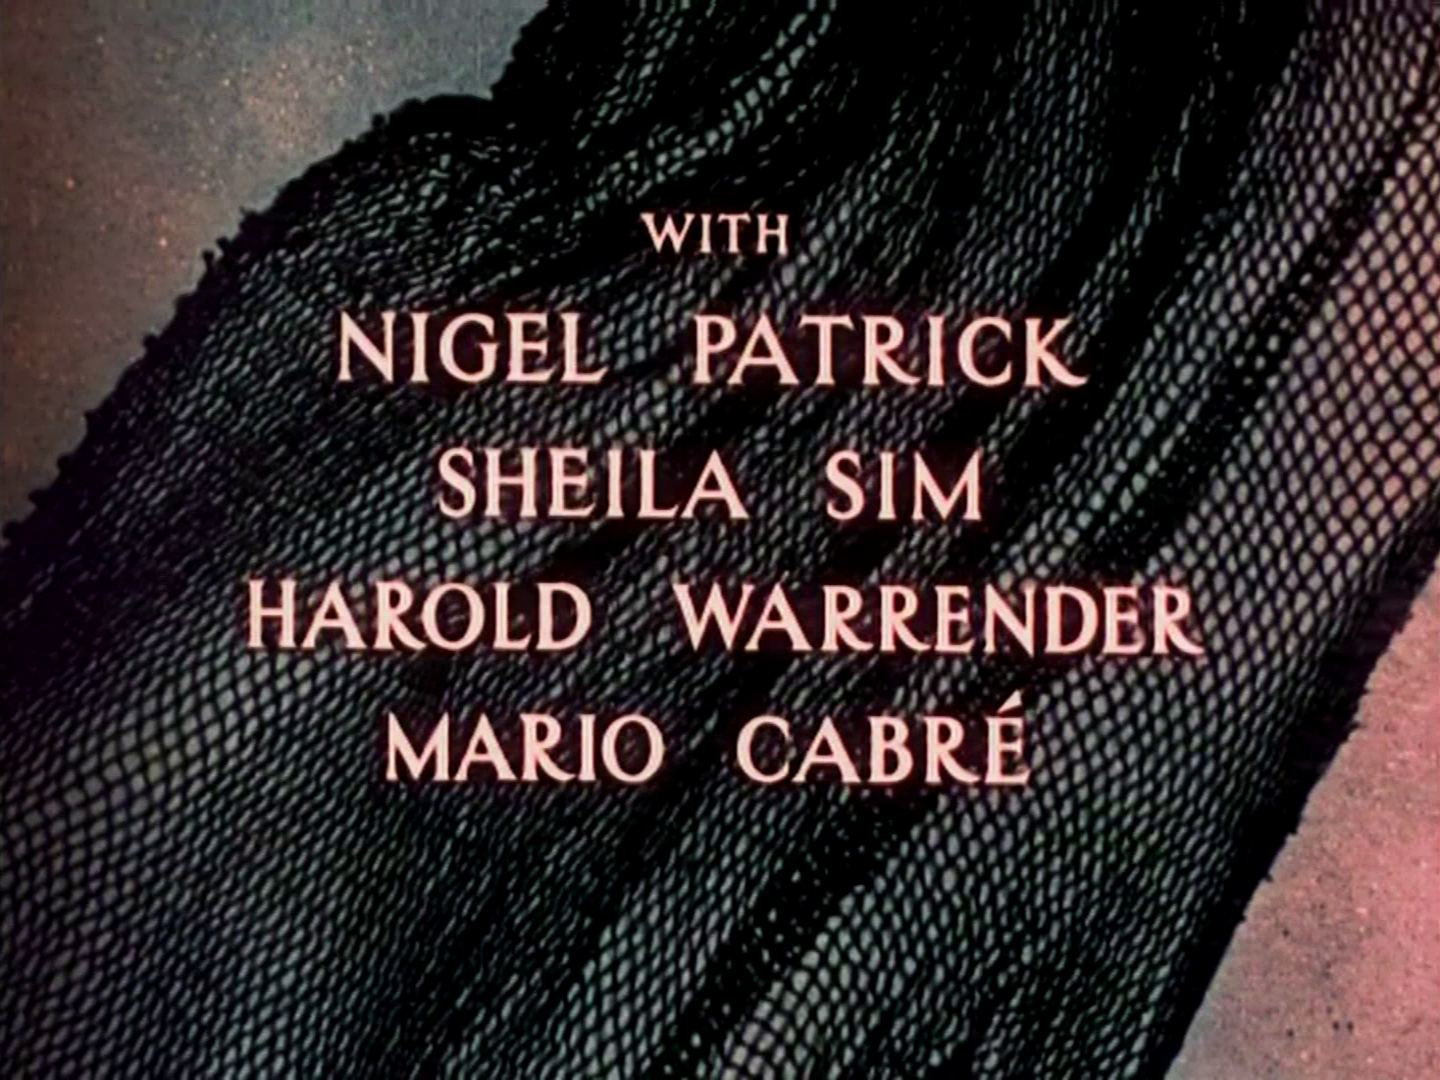 Main title from Pandora and the Flying Dutchman (1951) (3). With Nigel Patrick, Sheila Sim, Harold Warrender, Mario Cabré